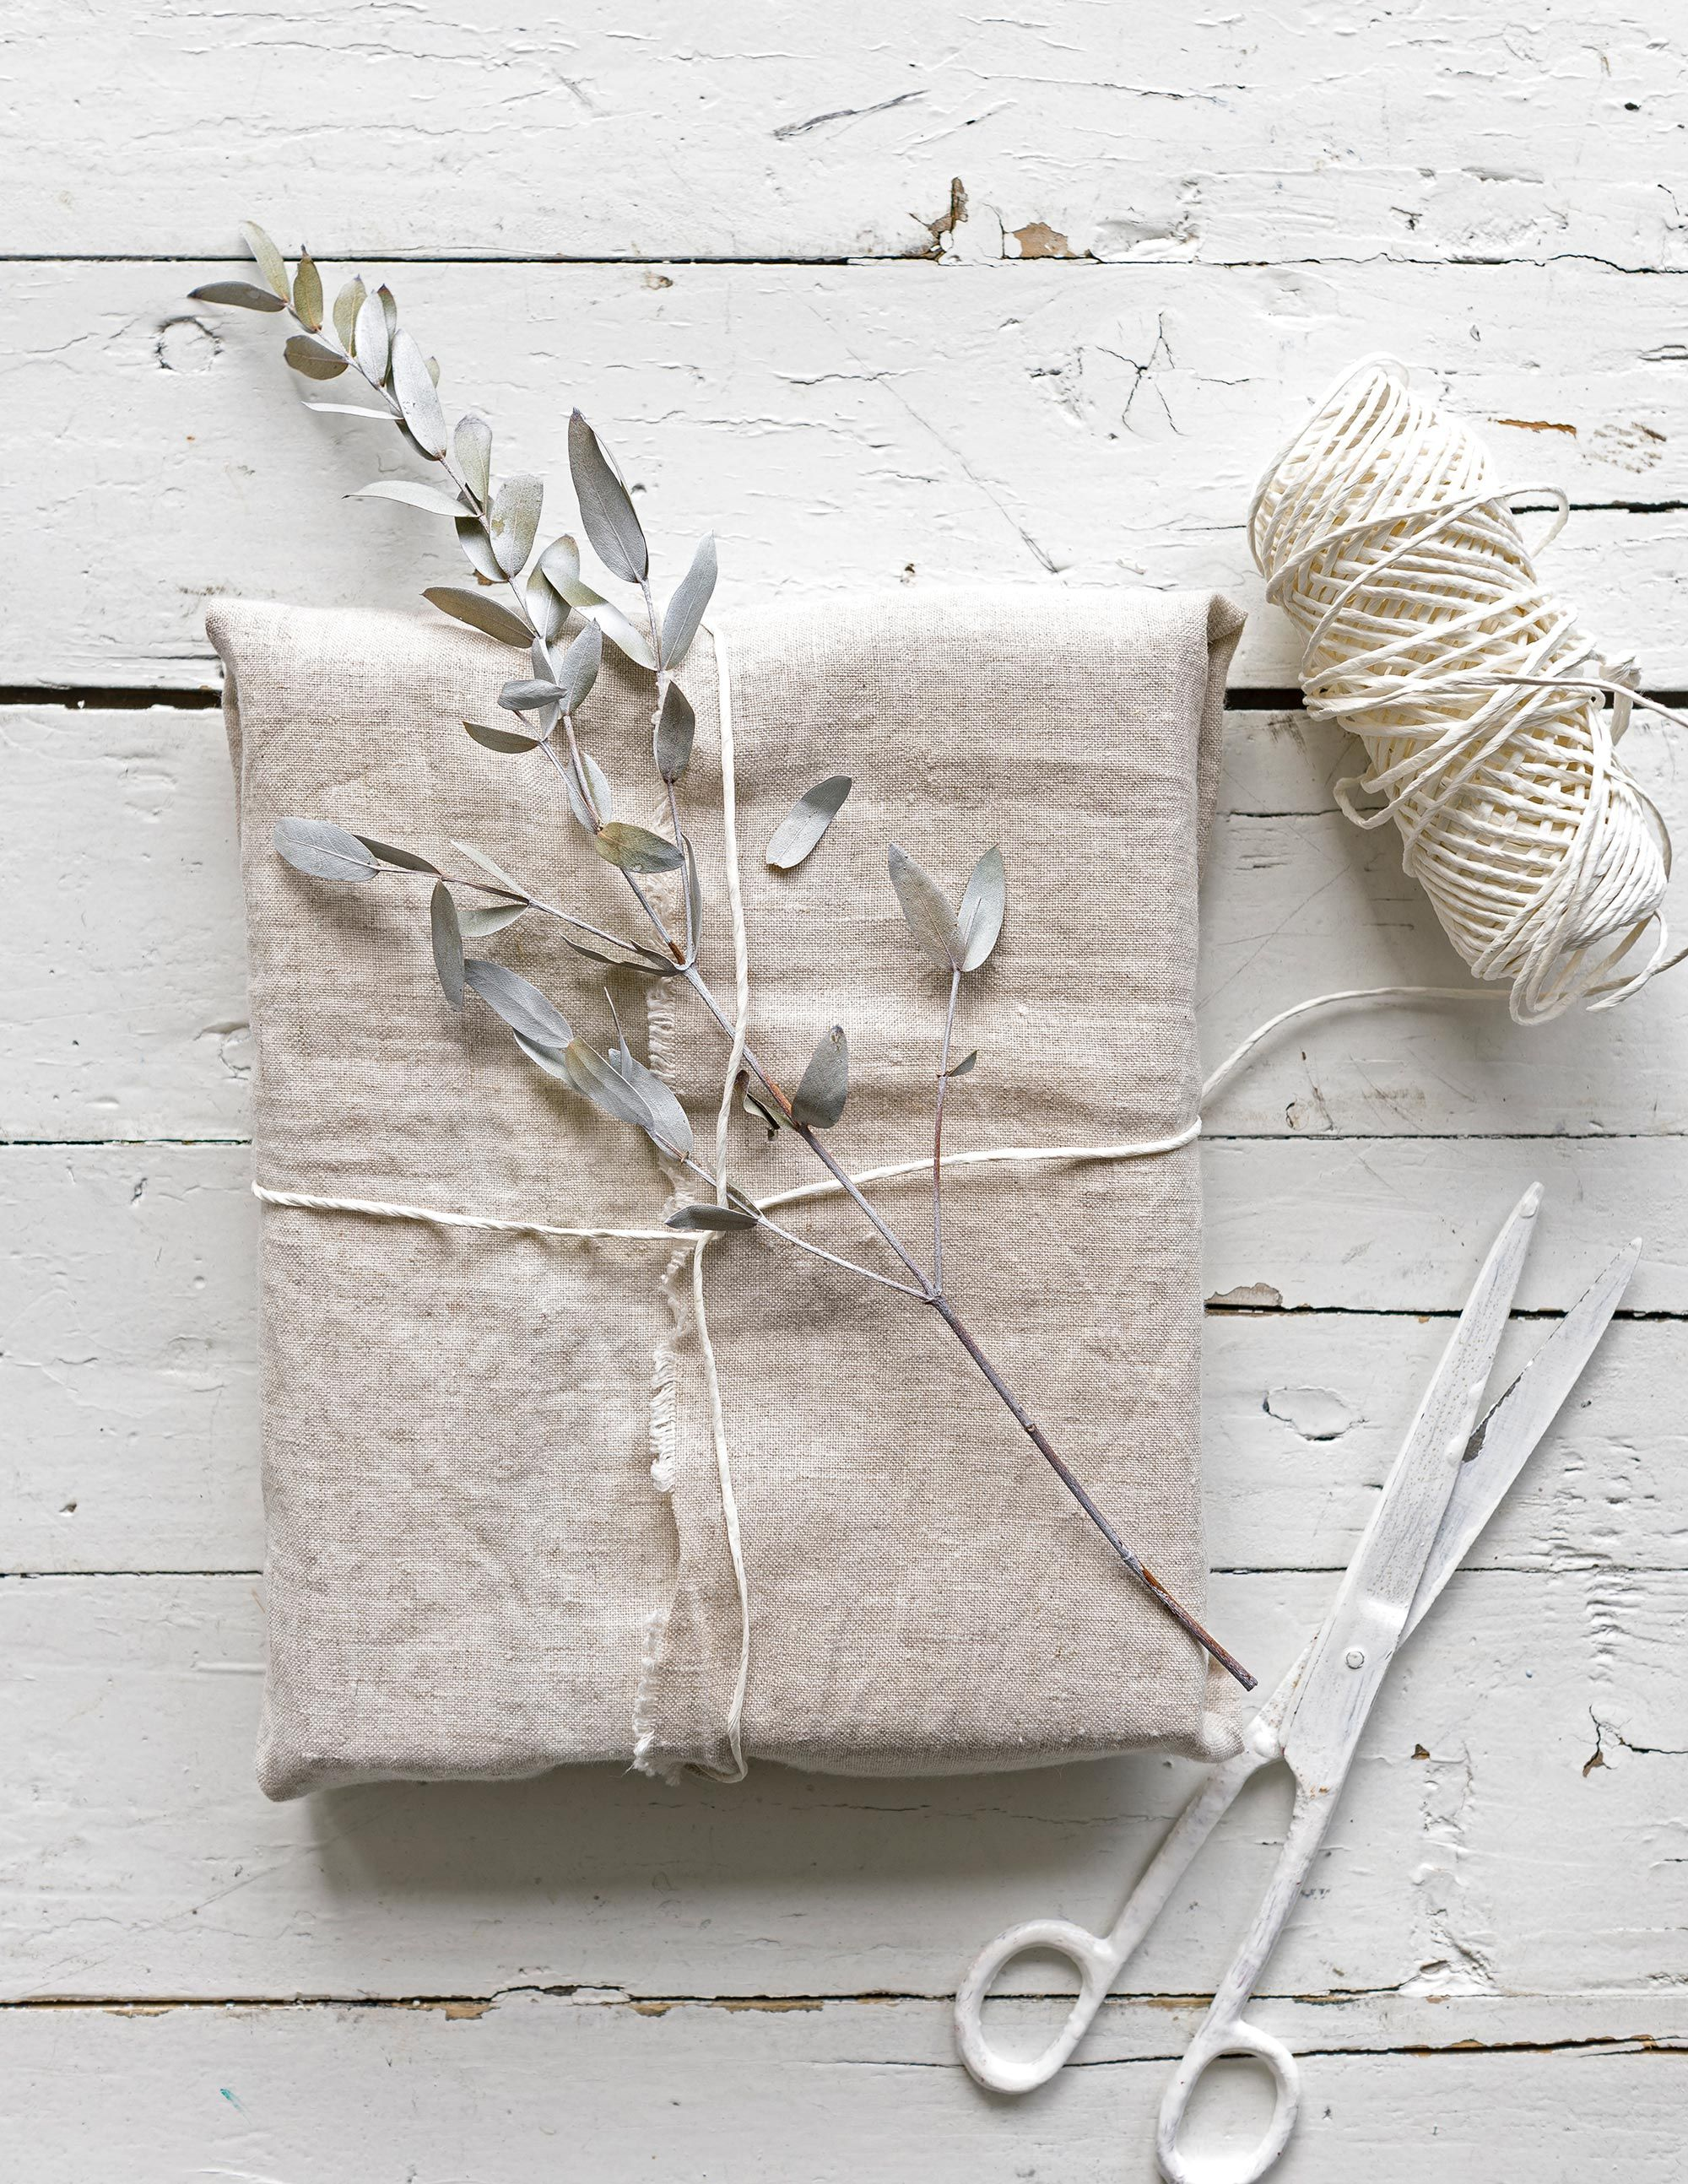 Diy Cadeautje Inpakken In Stof Gift Wrapping Clothes